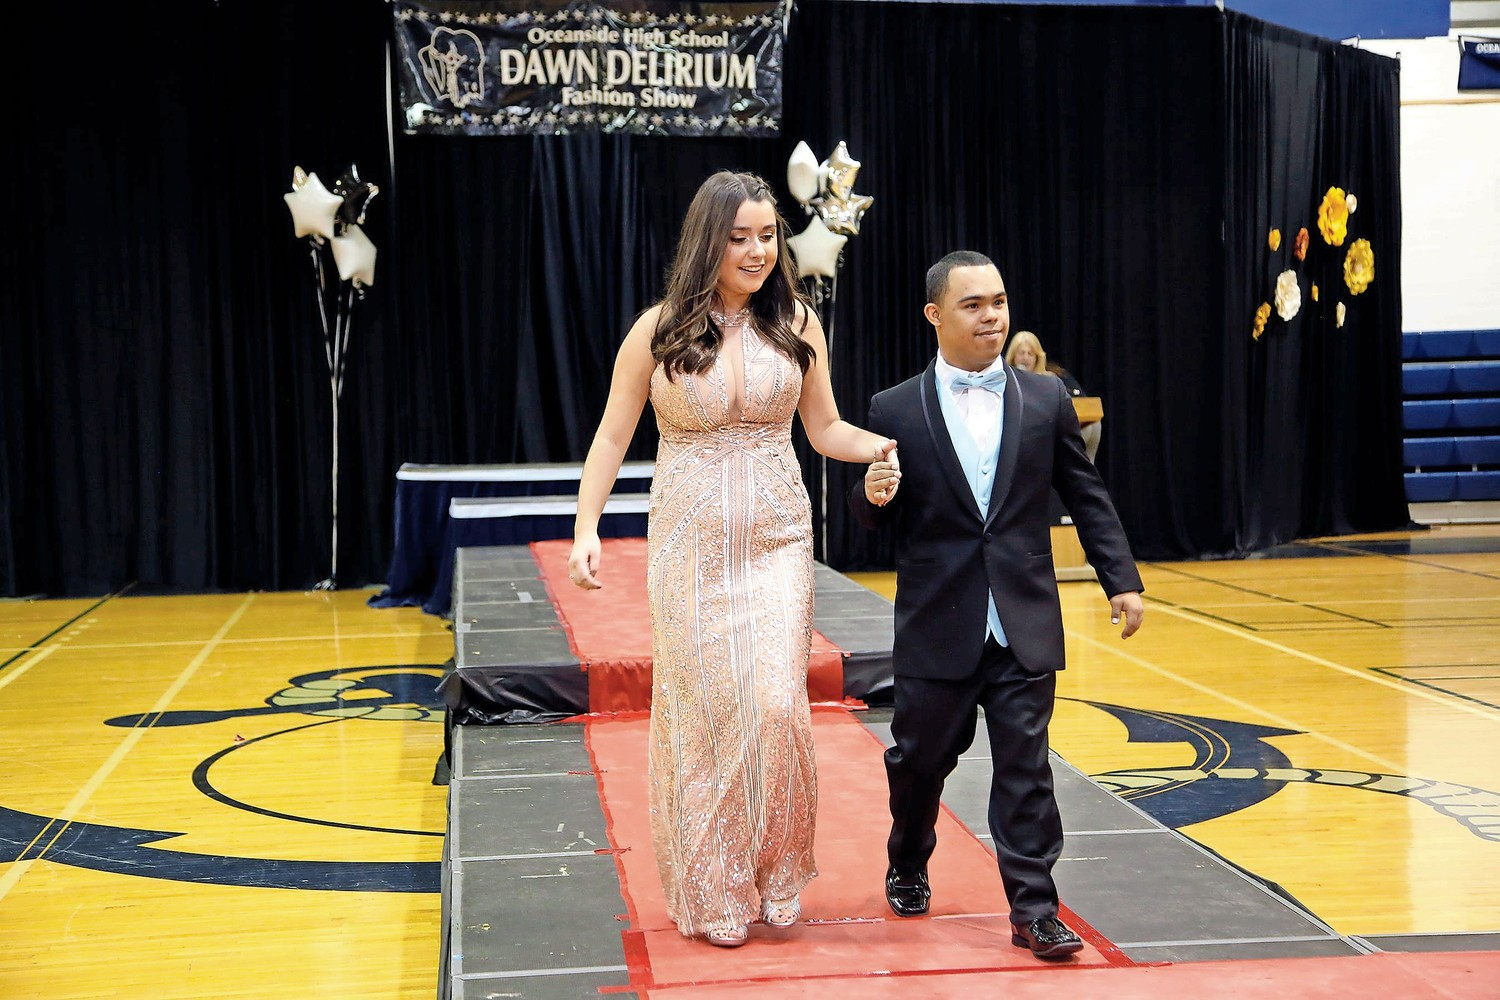 Benny Reyes leads Shona Daly off the red carpet after modeling their fancy garments.